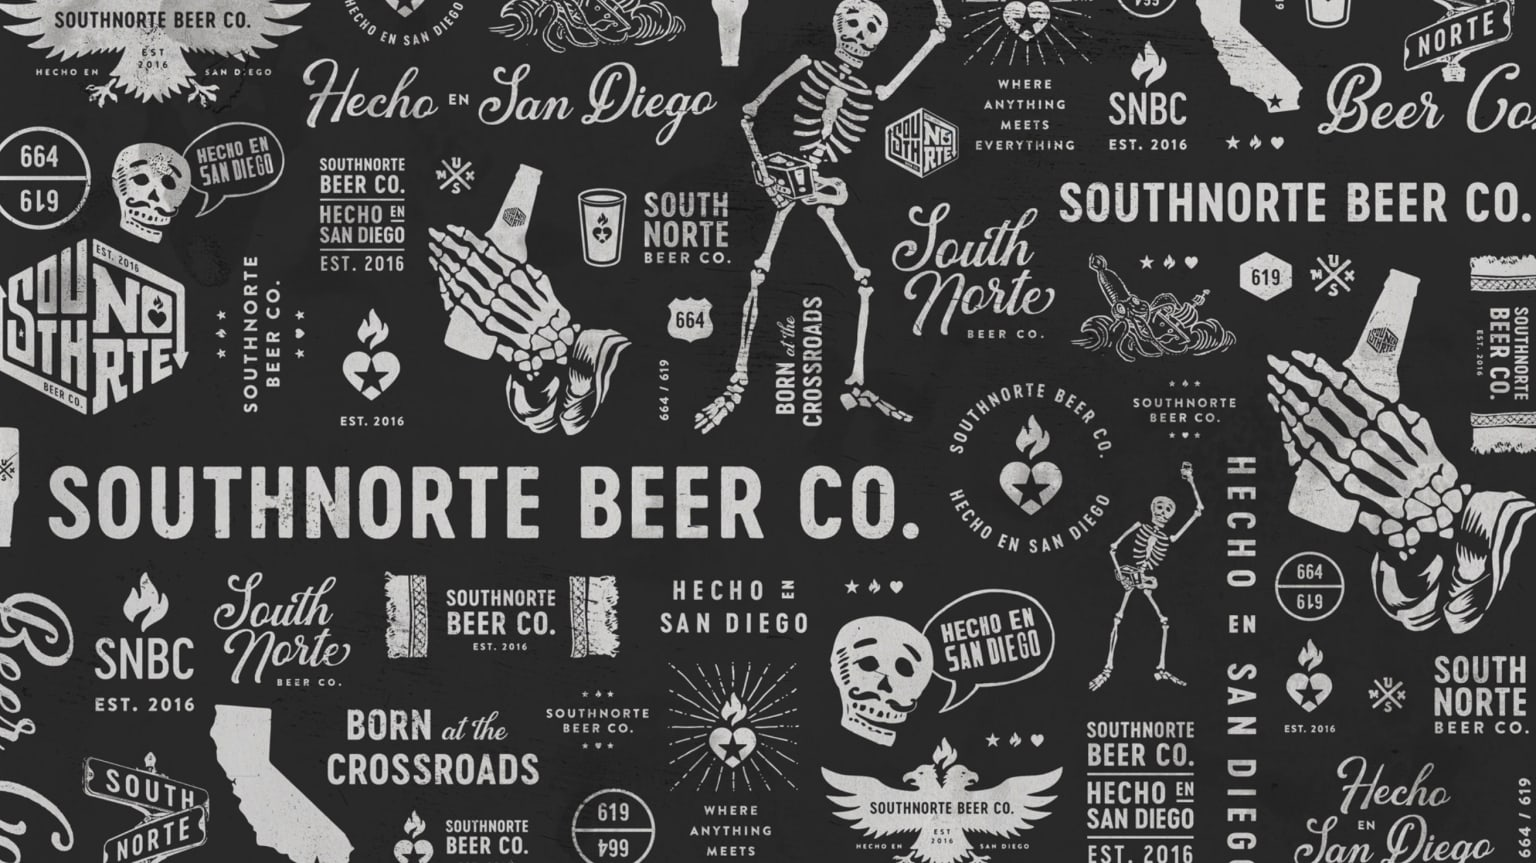 SOUTHNORTE BEER CO. — Brand Creation